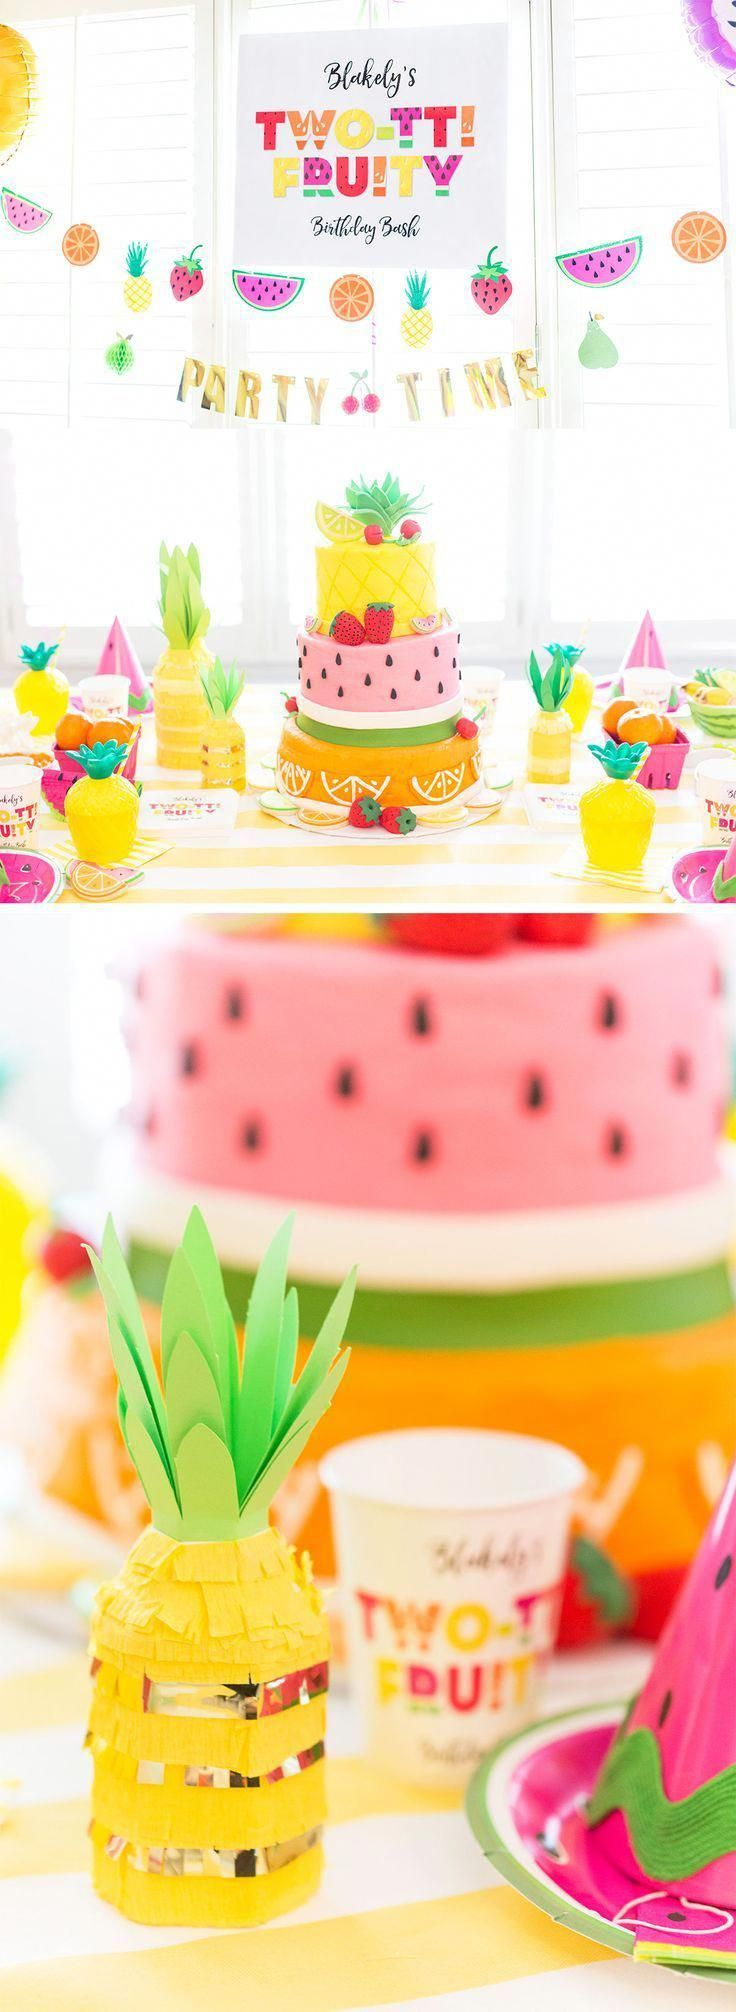 A guide to birthday party ideas girl 2nd birthday 2nd